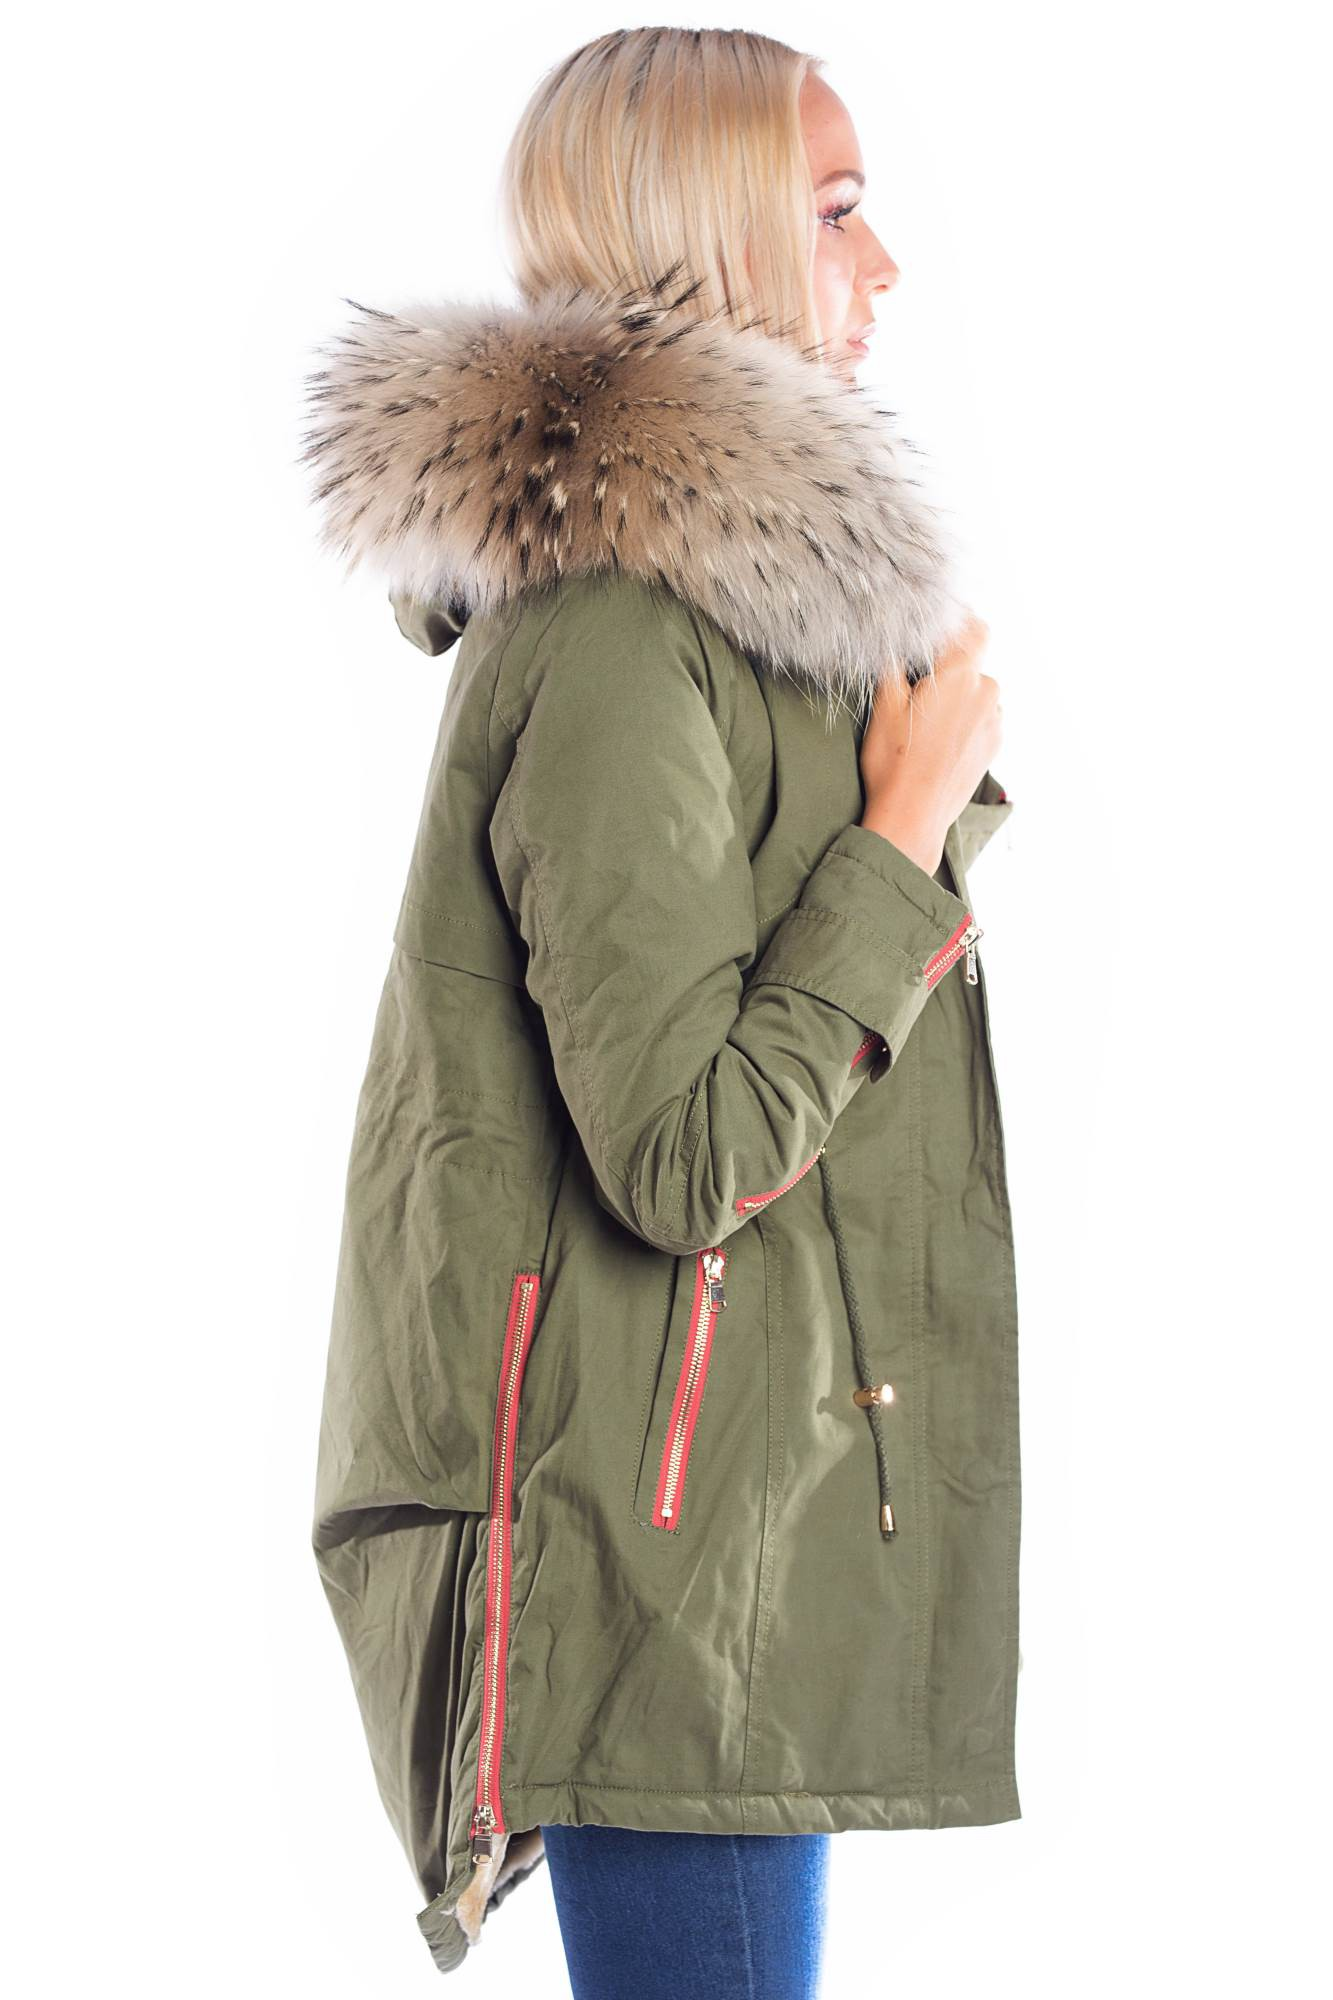 Luxury Parka Fellkapuze XXL Naturbraun Blogger Fashion Khaki kaufen ... 8687076698